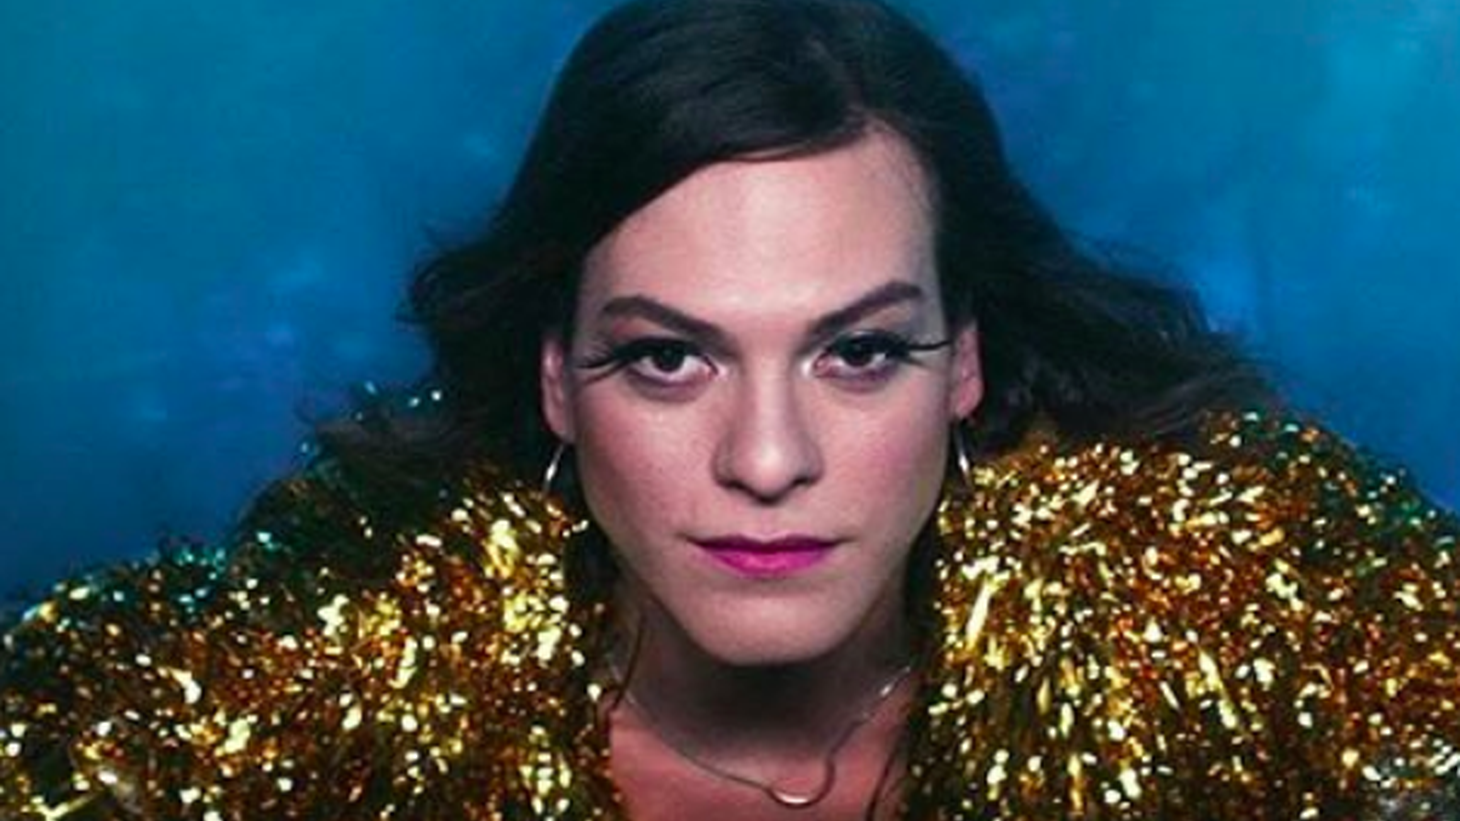 """Sebastián Lelio's """"A Fantastic Woman"""" is Chile's entry for this year's foreign-language Oscar."""